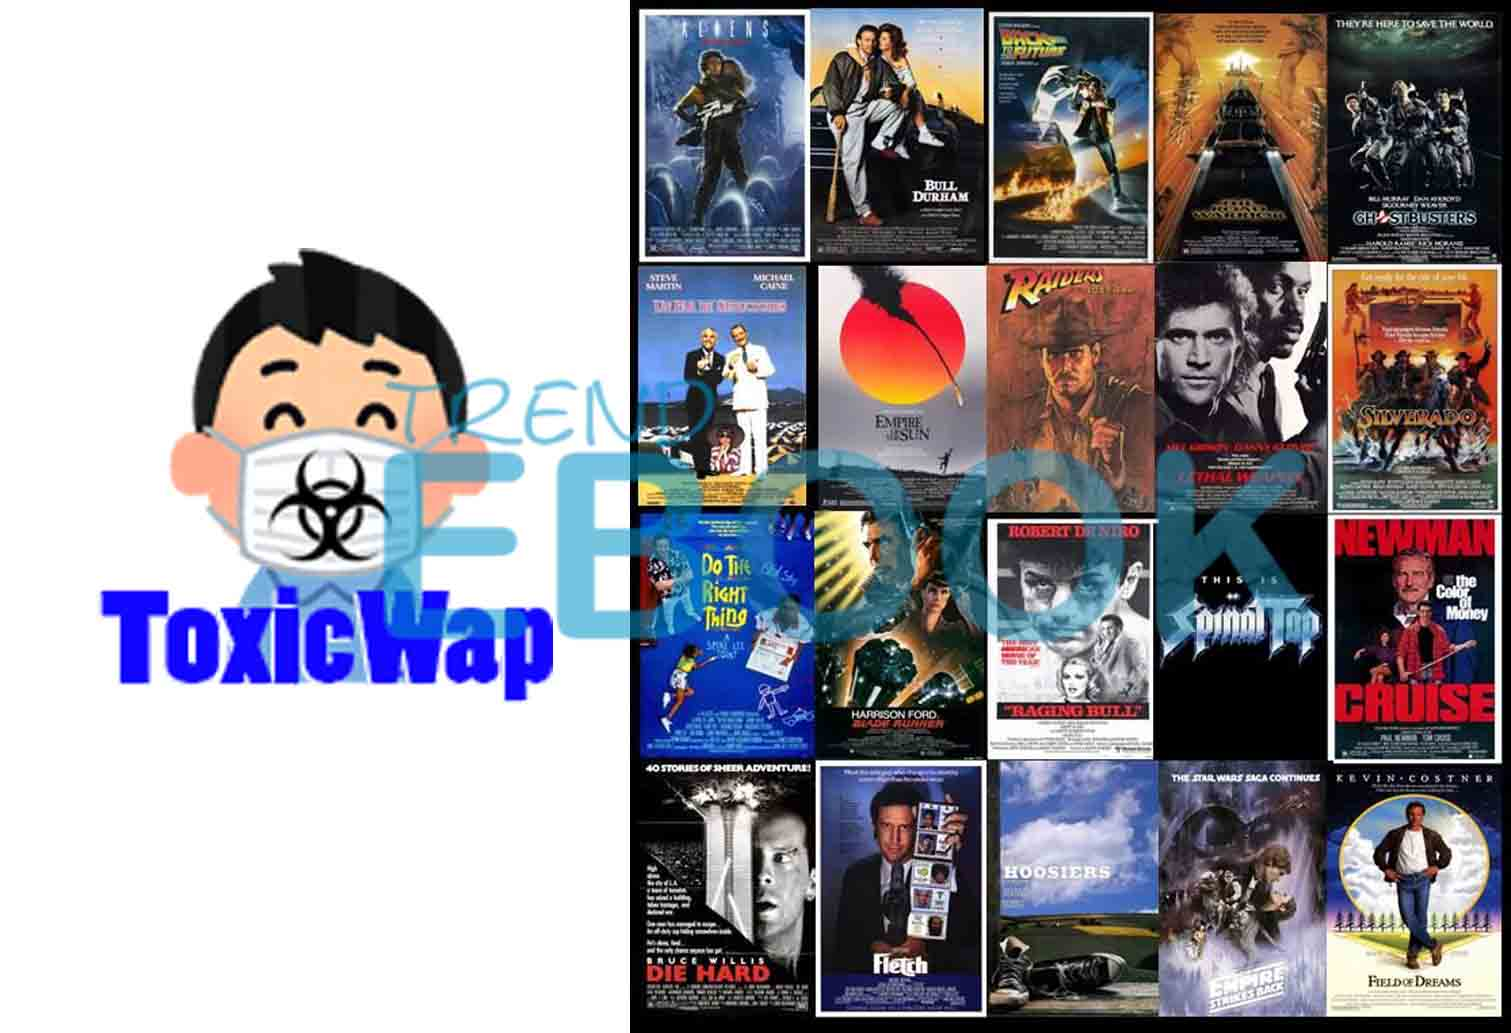 Toxicwap Movies - TV Series and Movies 2020   Toxicwap Tv Series